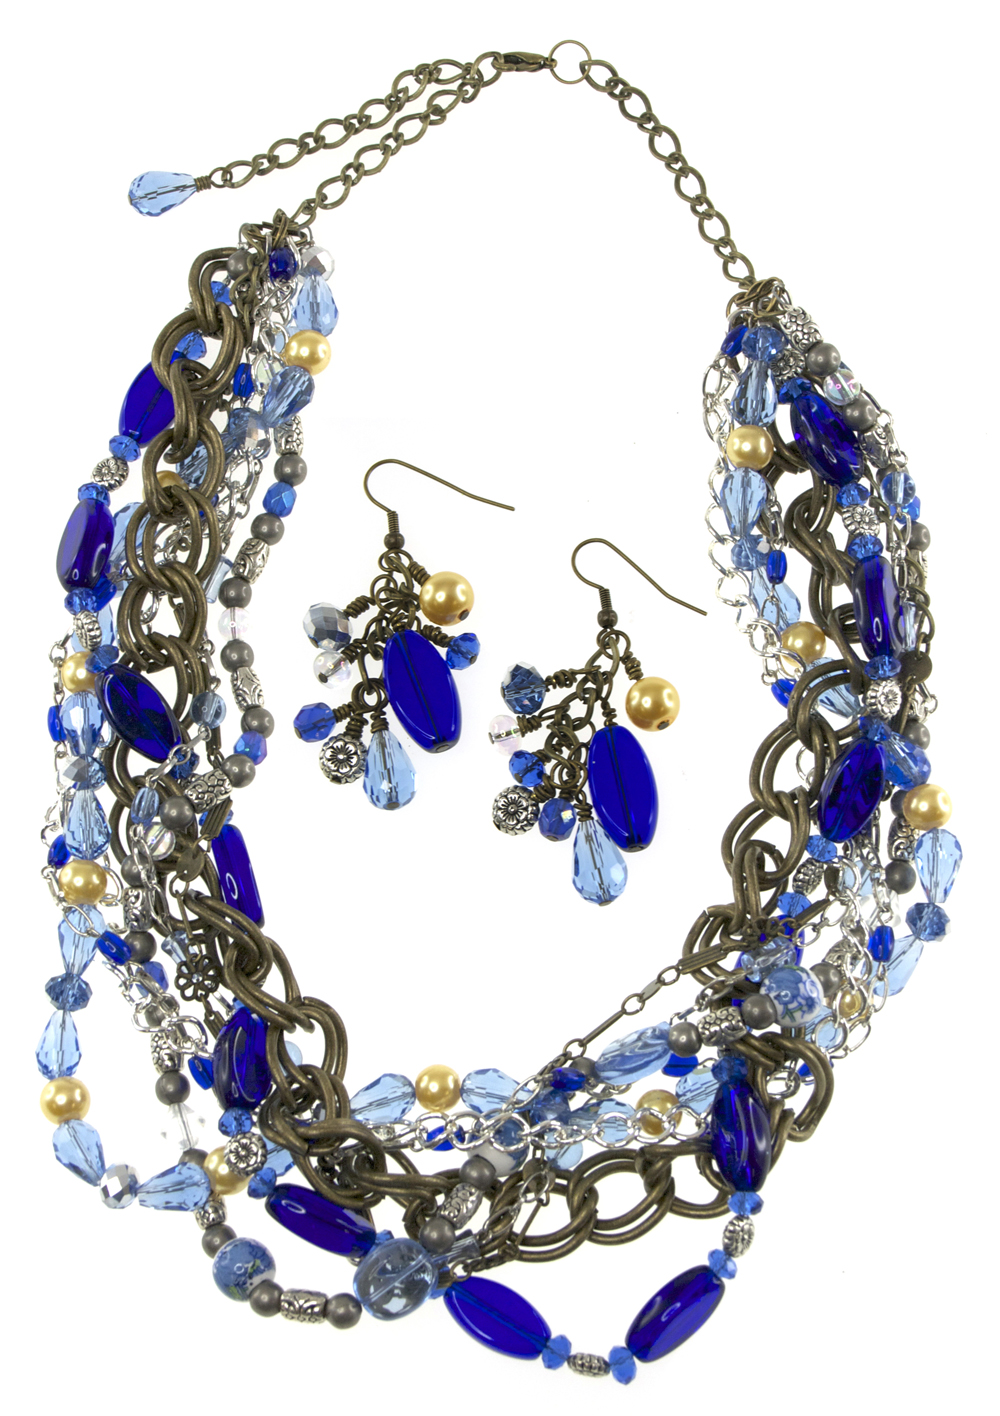 Lovely Multi-strand Necklace with Chain and Tons of Blue Glass Beads,